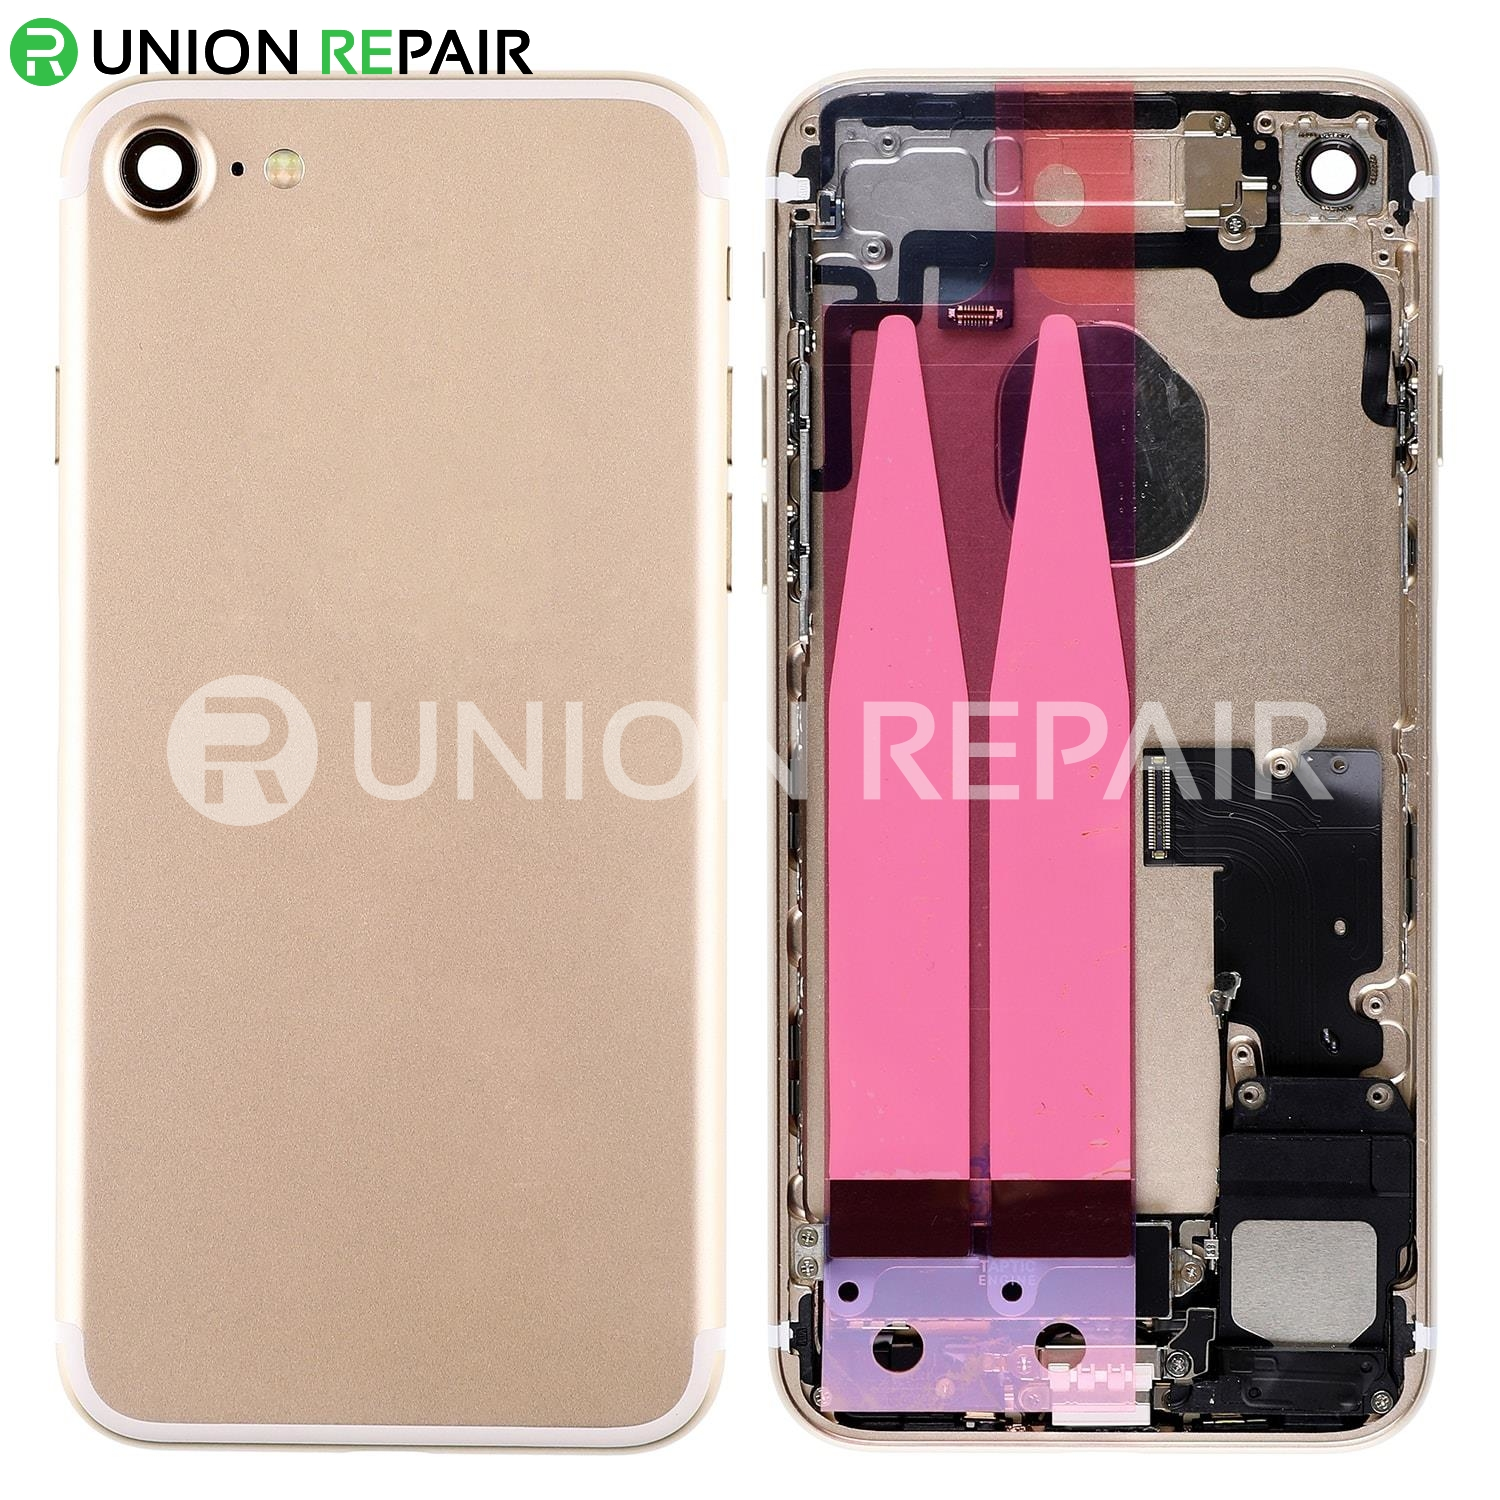 sale retailer dfc8f b7764 Replacement for iPhone 7 Back Cover Full Assembly - Gold